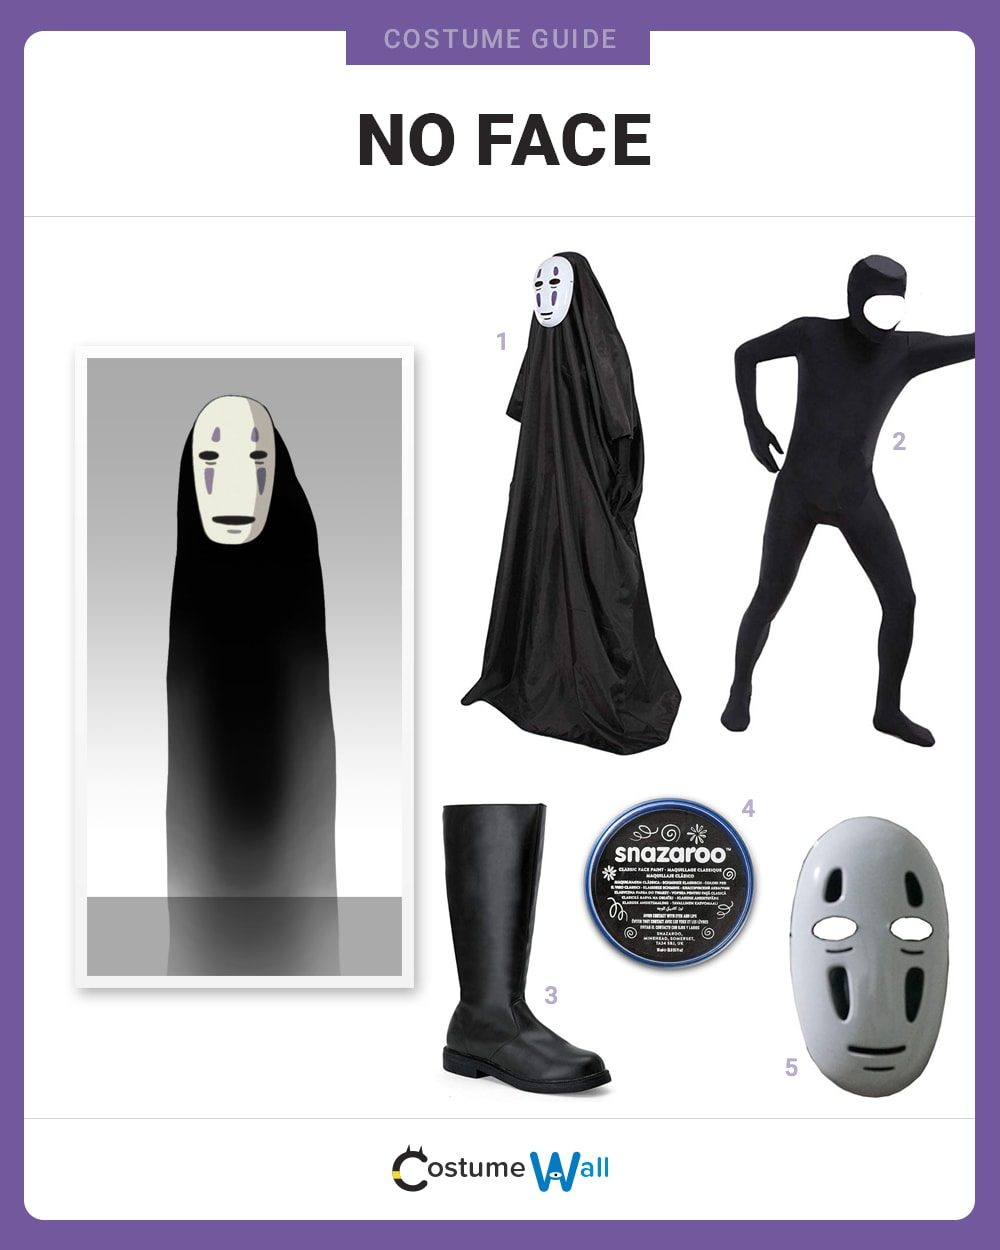 No-Face Costume Guide